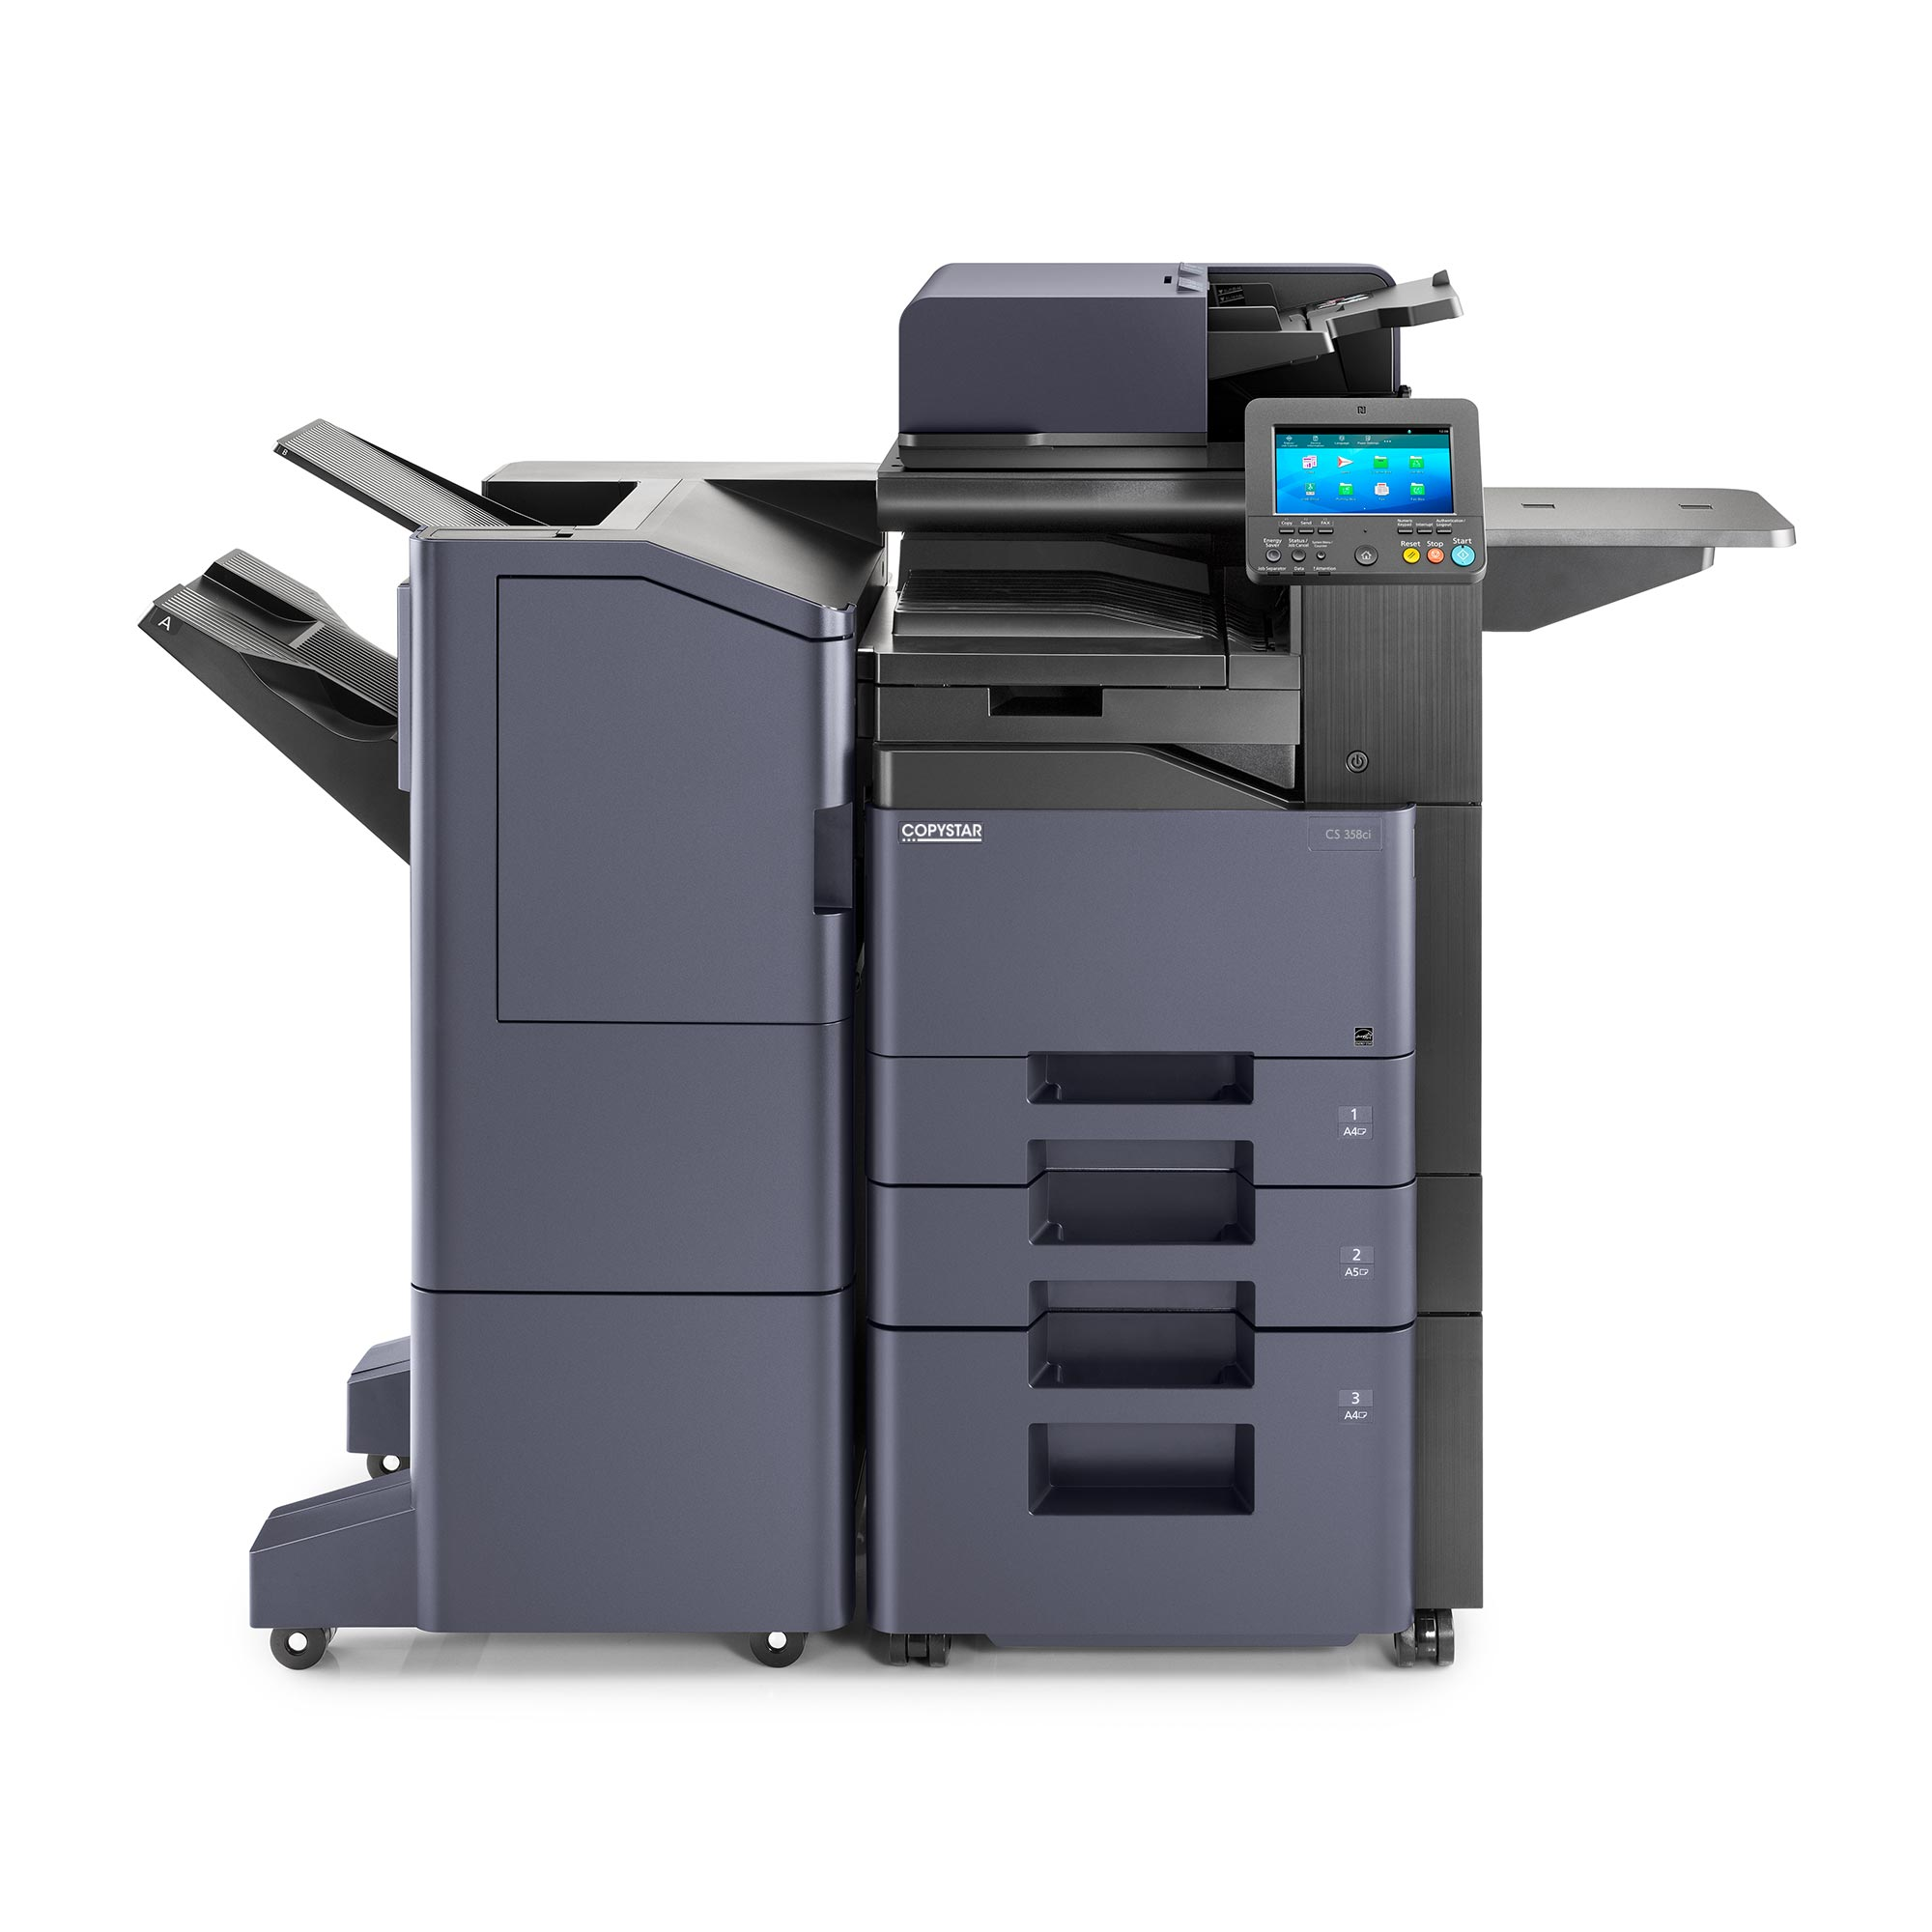 Kyocera CS_358ci ALL IN ONE COPY MACHINE SALES 53154, 53201, 53202, 53203, 53204, 53205, 53206, 53207, 53208, 53209, 53210, 53211, 53212, 53213, 53214, 53215, 53216, 53217, 53218, 53219, 53220, 53221, 53222, 53223, 53224, 53225, 53226, 53227, 53228, 53233, 53234, 53237, 53244, 53259, 53263, 53267, 53268, 53274, 53278, 53288, 53290, 53293, 53295